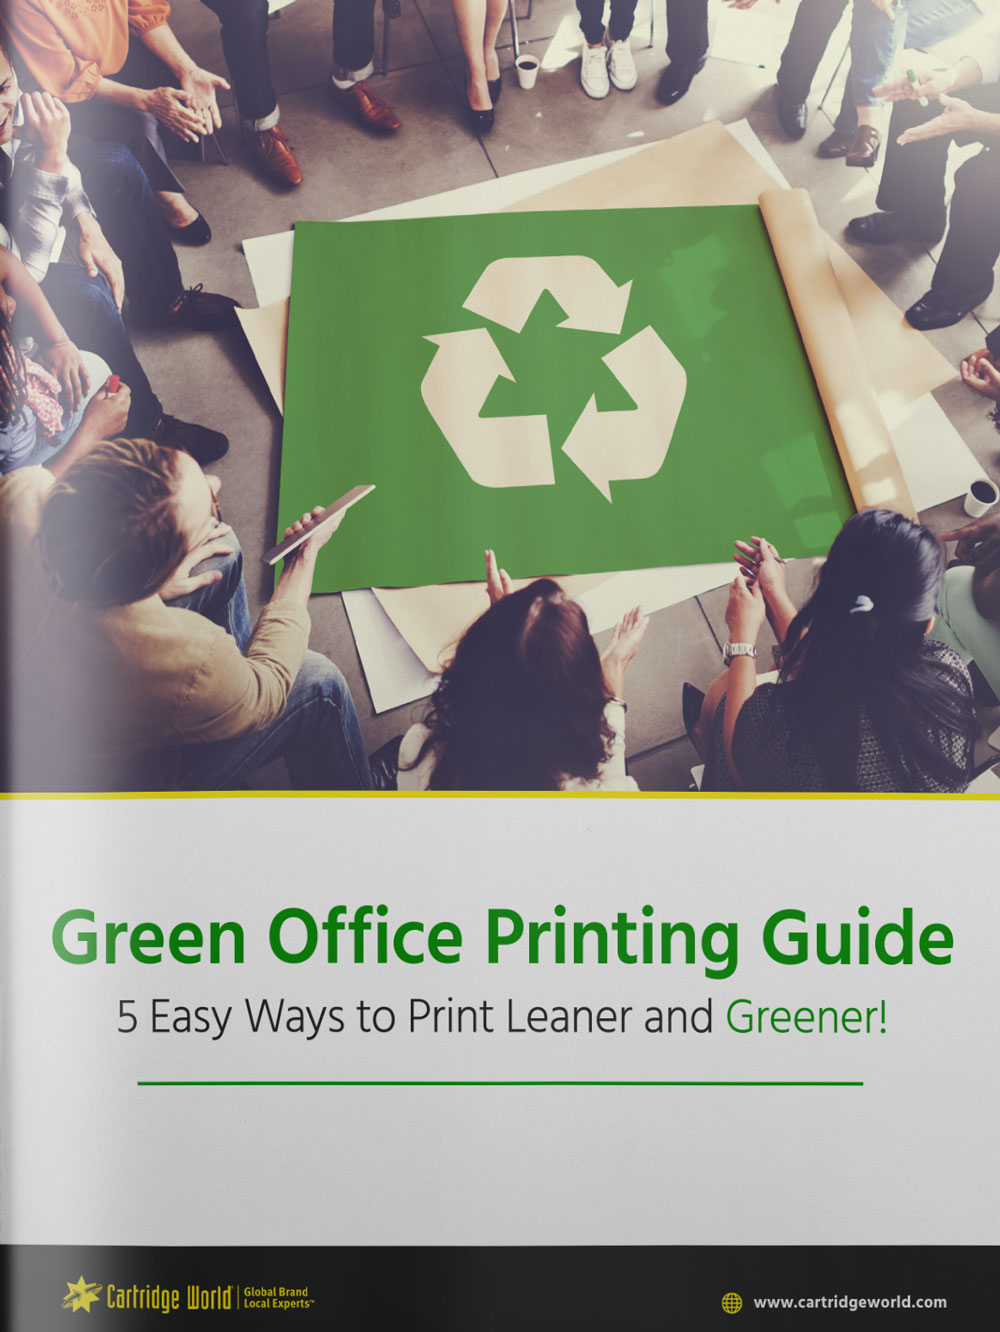 5-easy-ways-to-print--leaner-and-greener